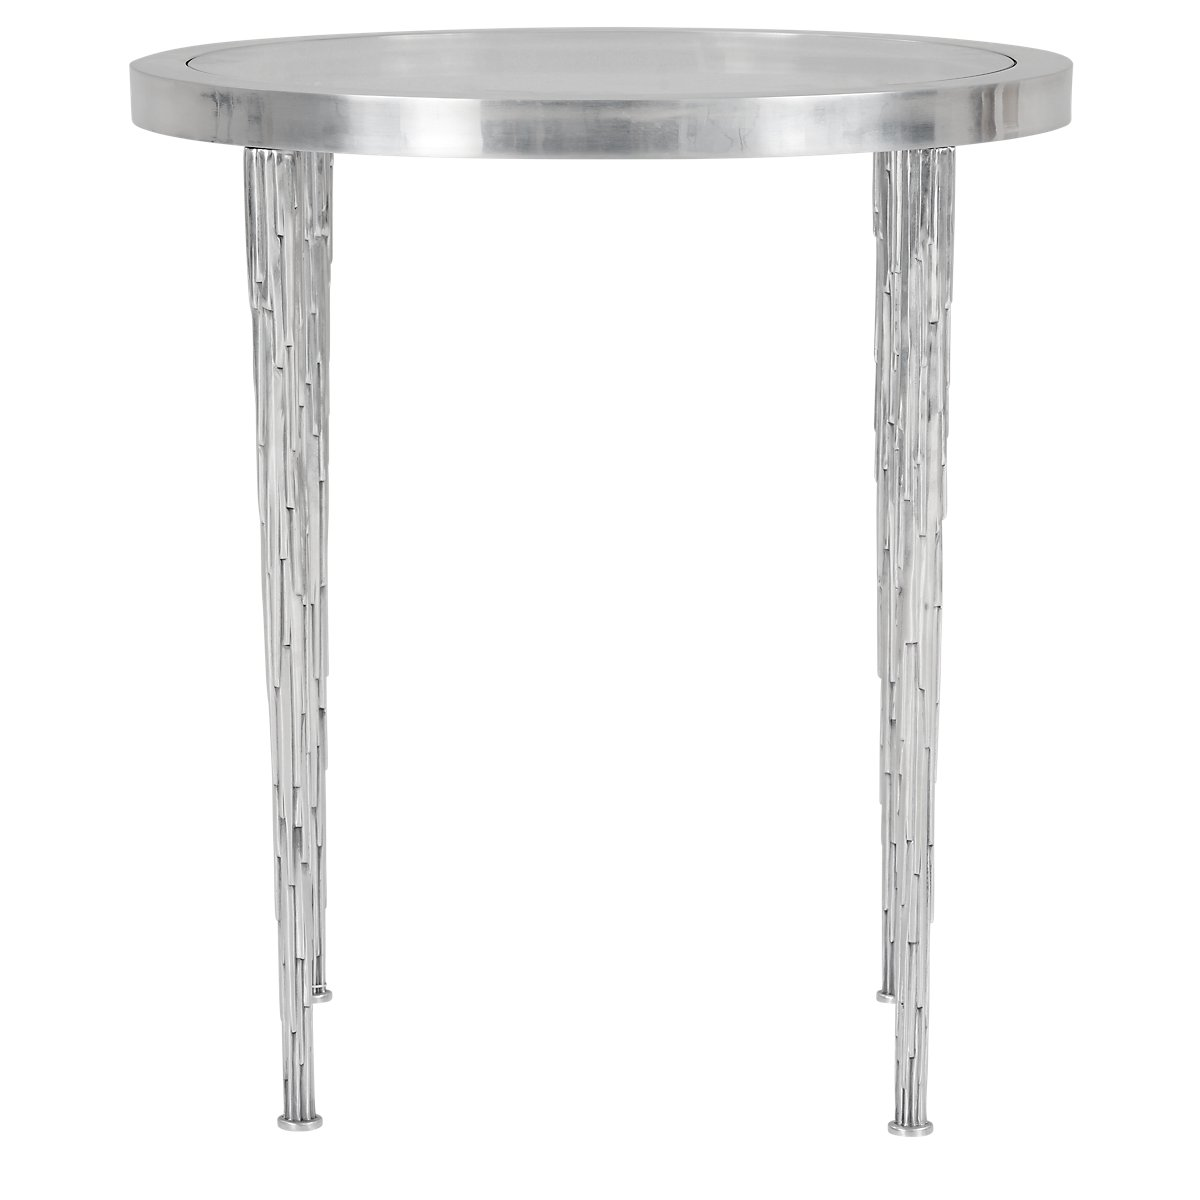 City Furniture Acton White Glass Round End Table